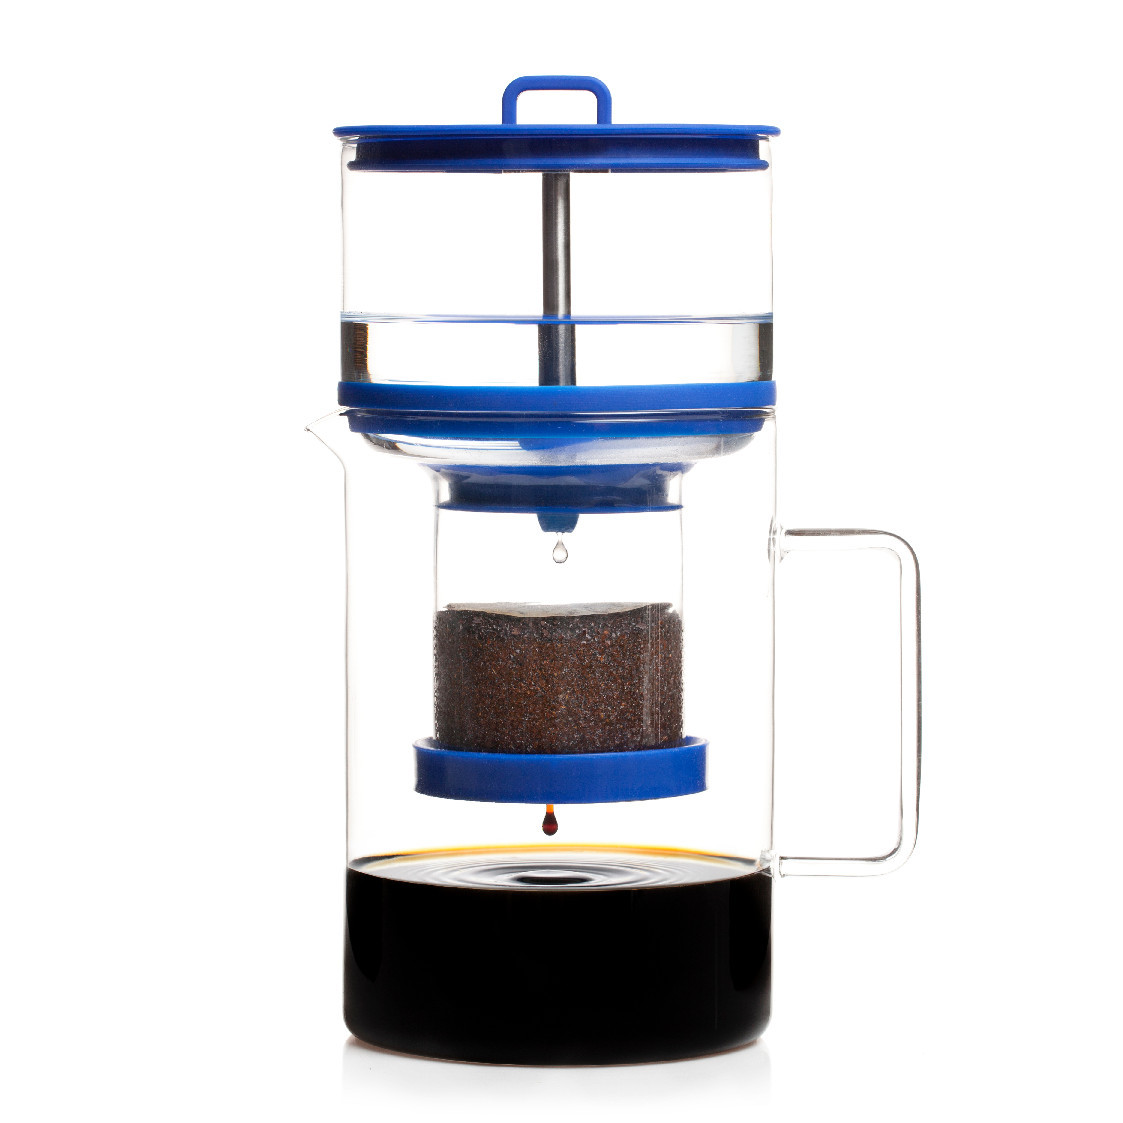 Cold Bruer coffee maker